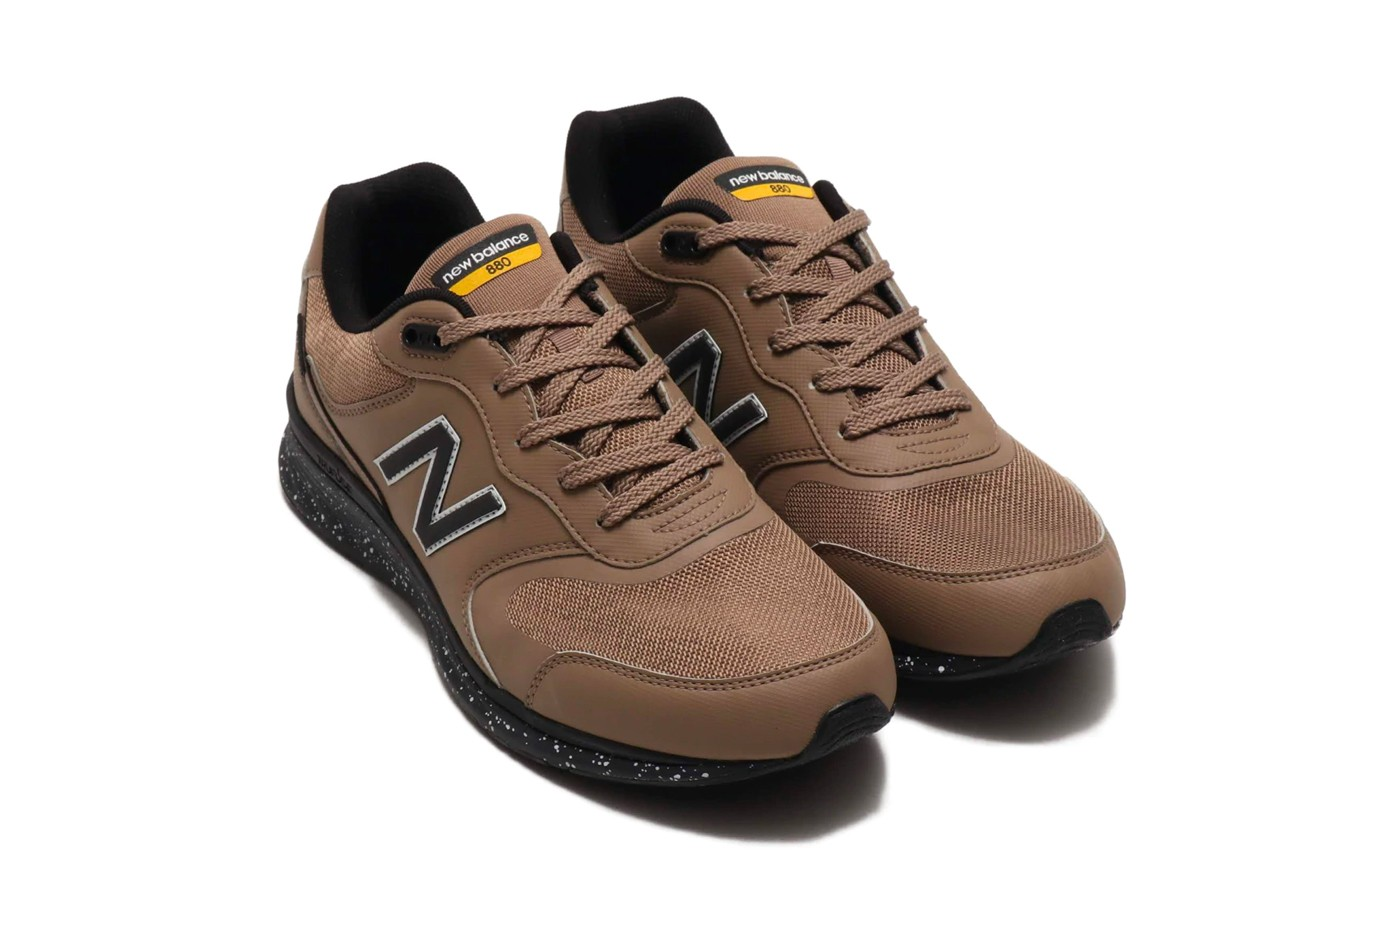 New Balance MW880 GORE-TEX, sneakers